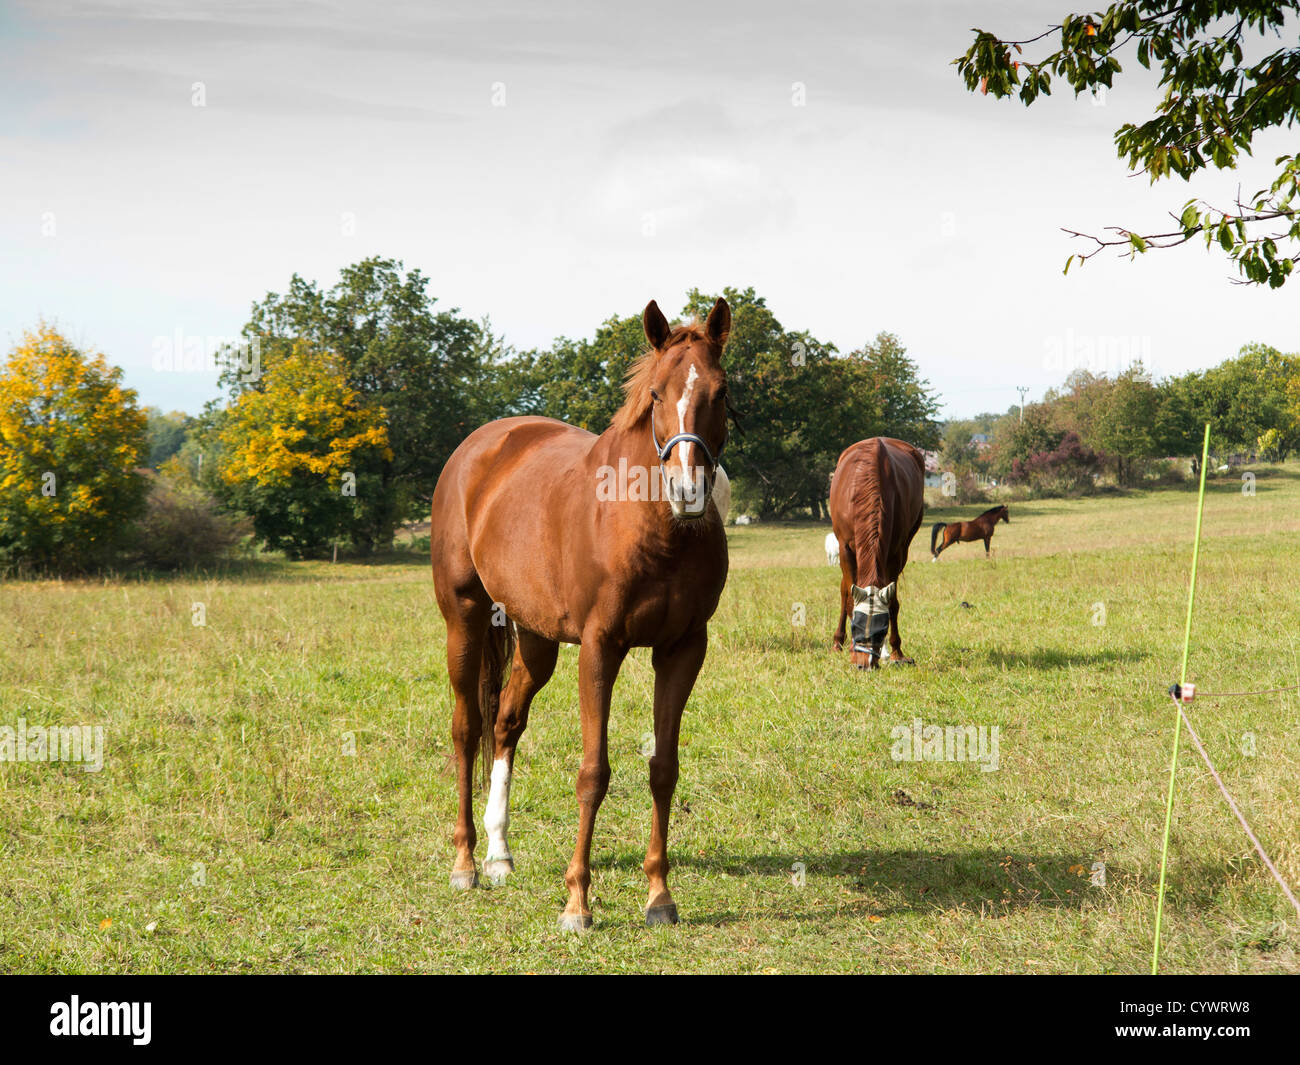 bay horse on pasture - Stock Image